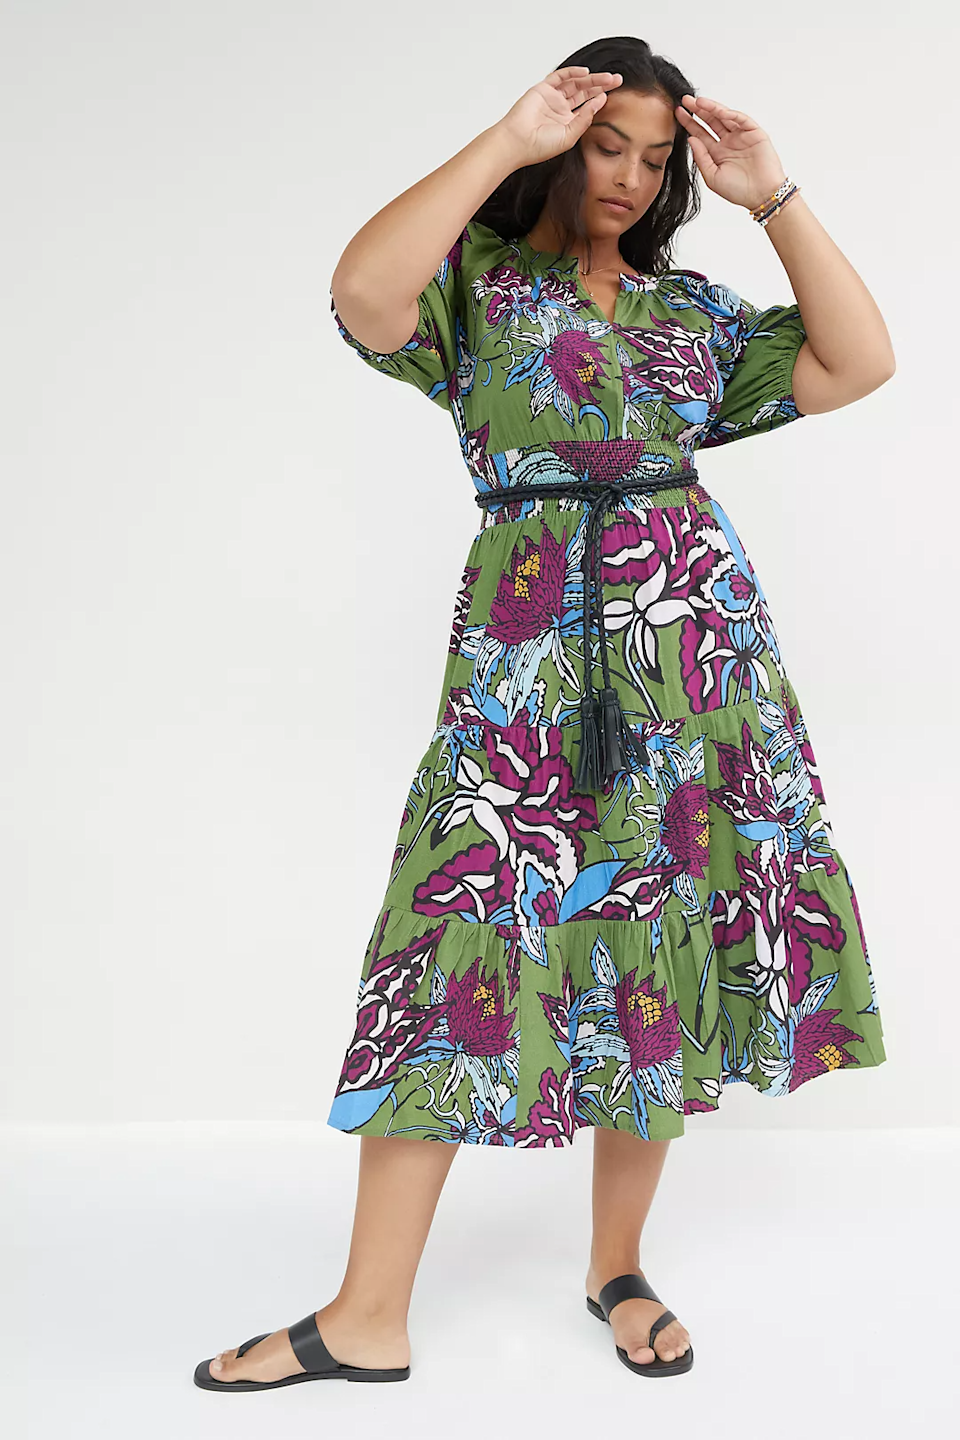 """<h2>Conditions Apply Floral Puff-Sleeved Maxi Dress<br></h2><br><strong>Sizes Available 16W/20W</strong><br><br><em>Shop <strong><a href=""""https://www.anthropologie.com/shop/floral-puff-sleeved-maxi-dress?color=031&type=PLUS"""" rel=""""nofollow noopener"""" target=""""_blank"""" data-ylk=""""slk:Anthropologie"""" class=""""link rapid-noclick-resp"""">Anthropologie</a></strong></em><br><br><strong>Conditions Apply</strong> Floral Puff-Sleeved Maxi Dress, $, available at <a href=""""https://go.skimresources.com/?id=30283X879131&url=https%3A%2F%2Fwww.anthropologie.com%2Fshop%2Ffloral-puff-sleeved-maxi-dress"""" rel=""""nofollow noopener"""" target=""""_blank"""" data-ylk=""""slk:Anthropologie"""" class=""""link rapid-noclick-resp"""">Anthropologie</a>"""